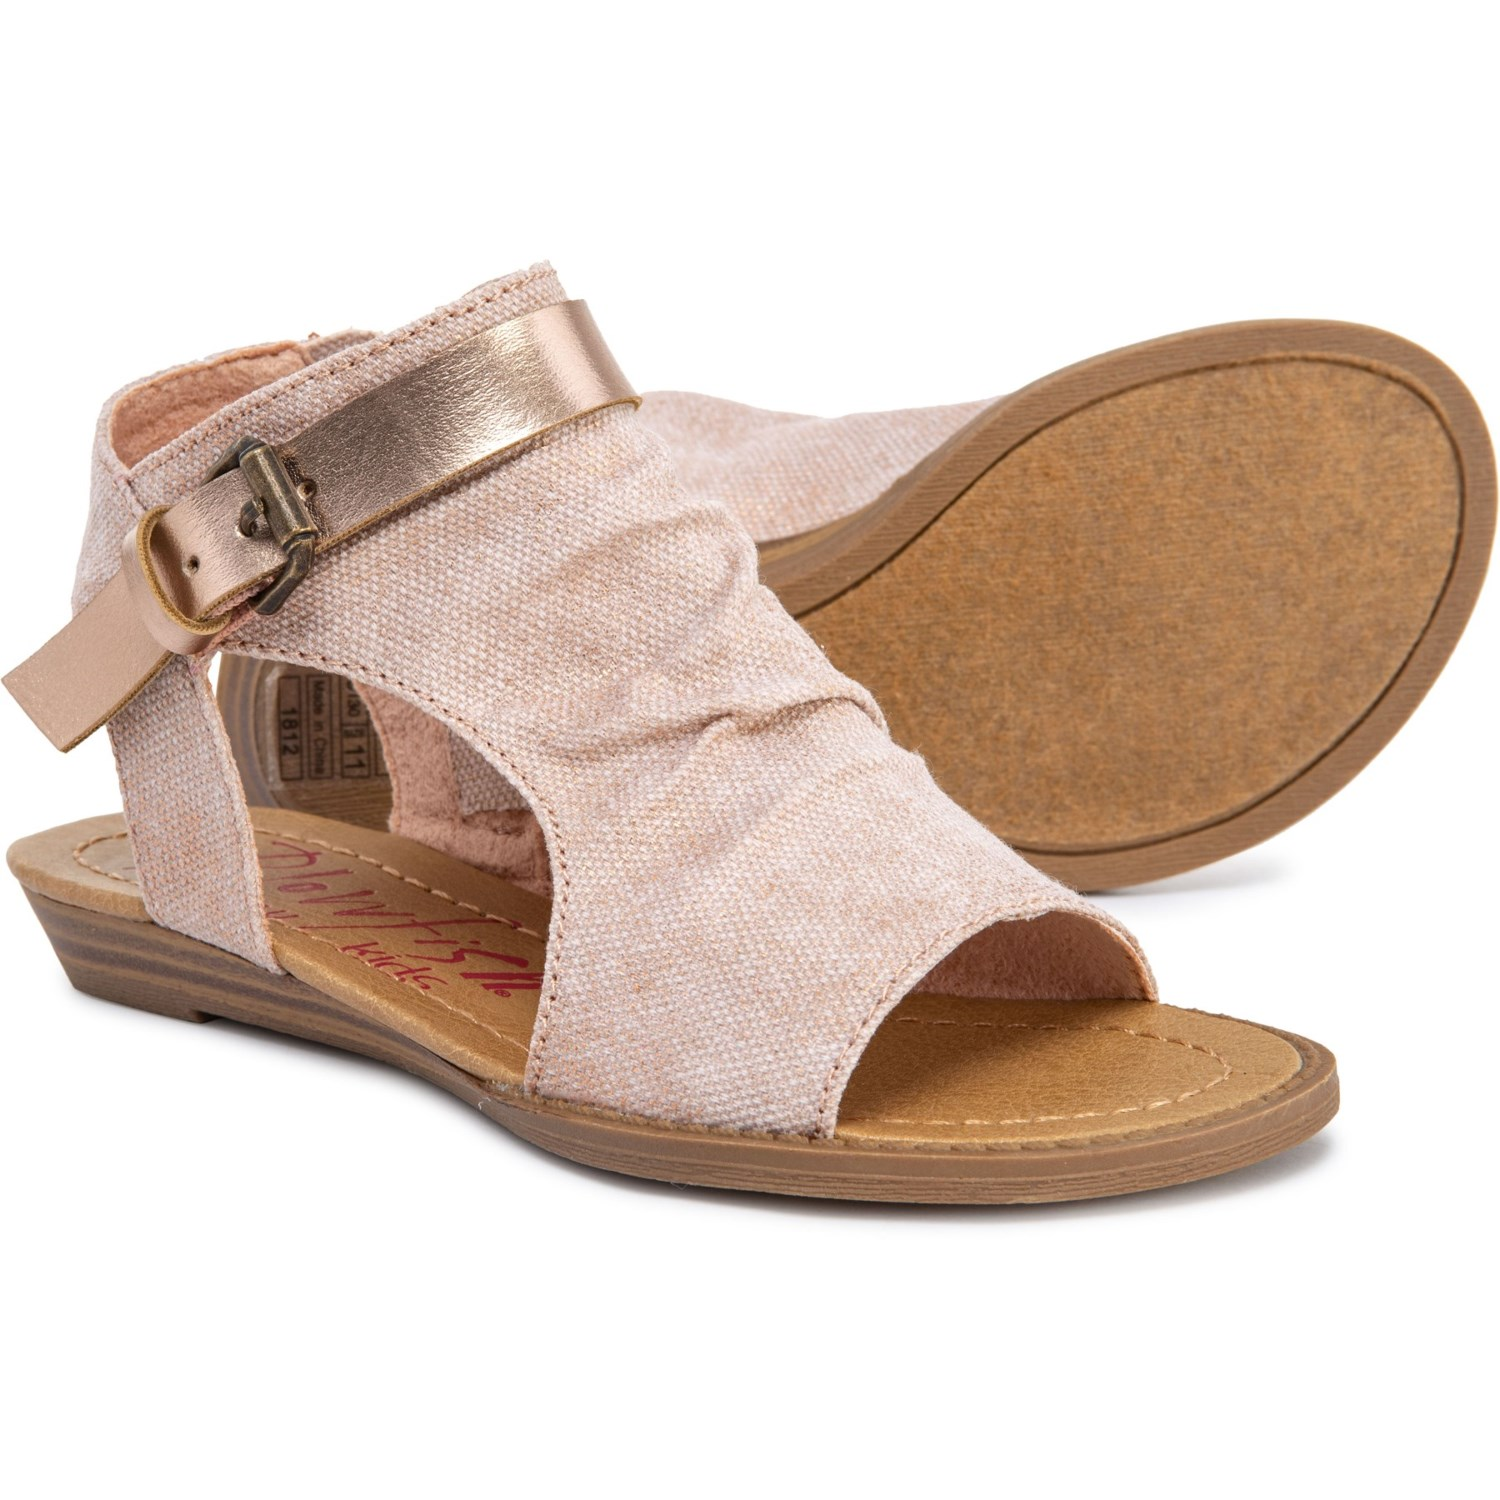 72268a1288b5e Blowfish Barend Sandals (For Girls) in Rose Gold Metallic Gaucho ...